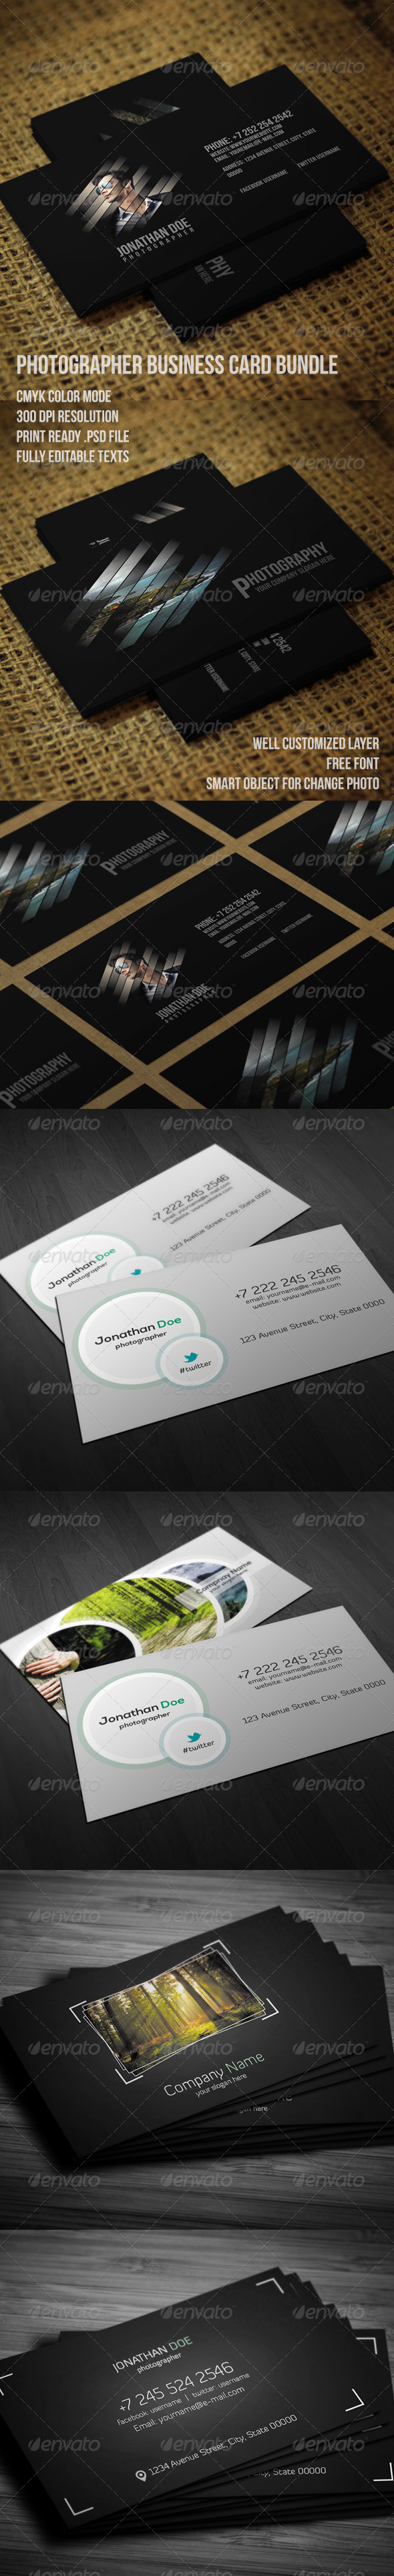 GraphicRiver Photographer Business Card Bundle 7723352